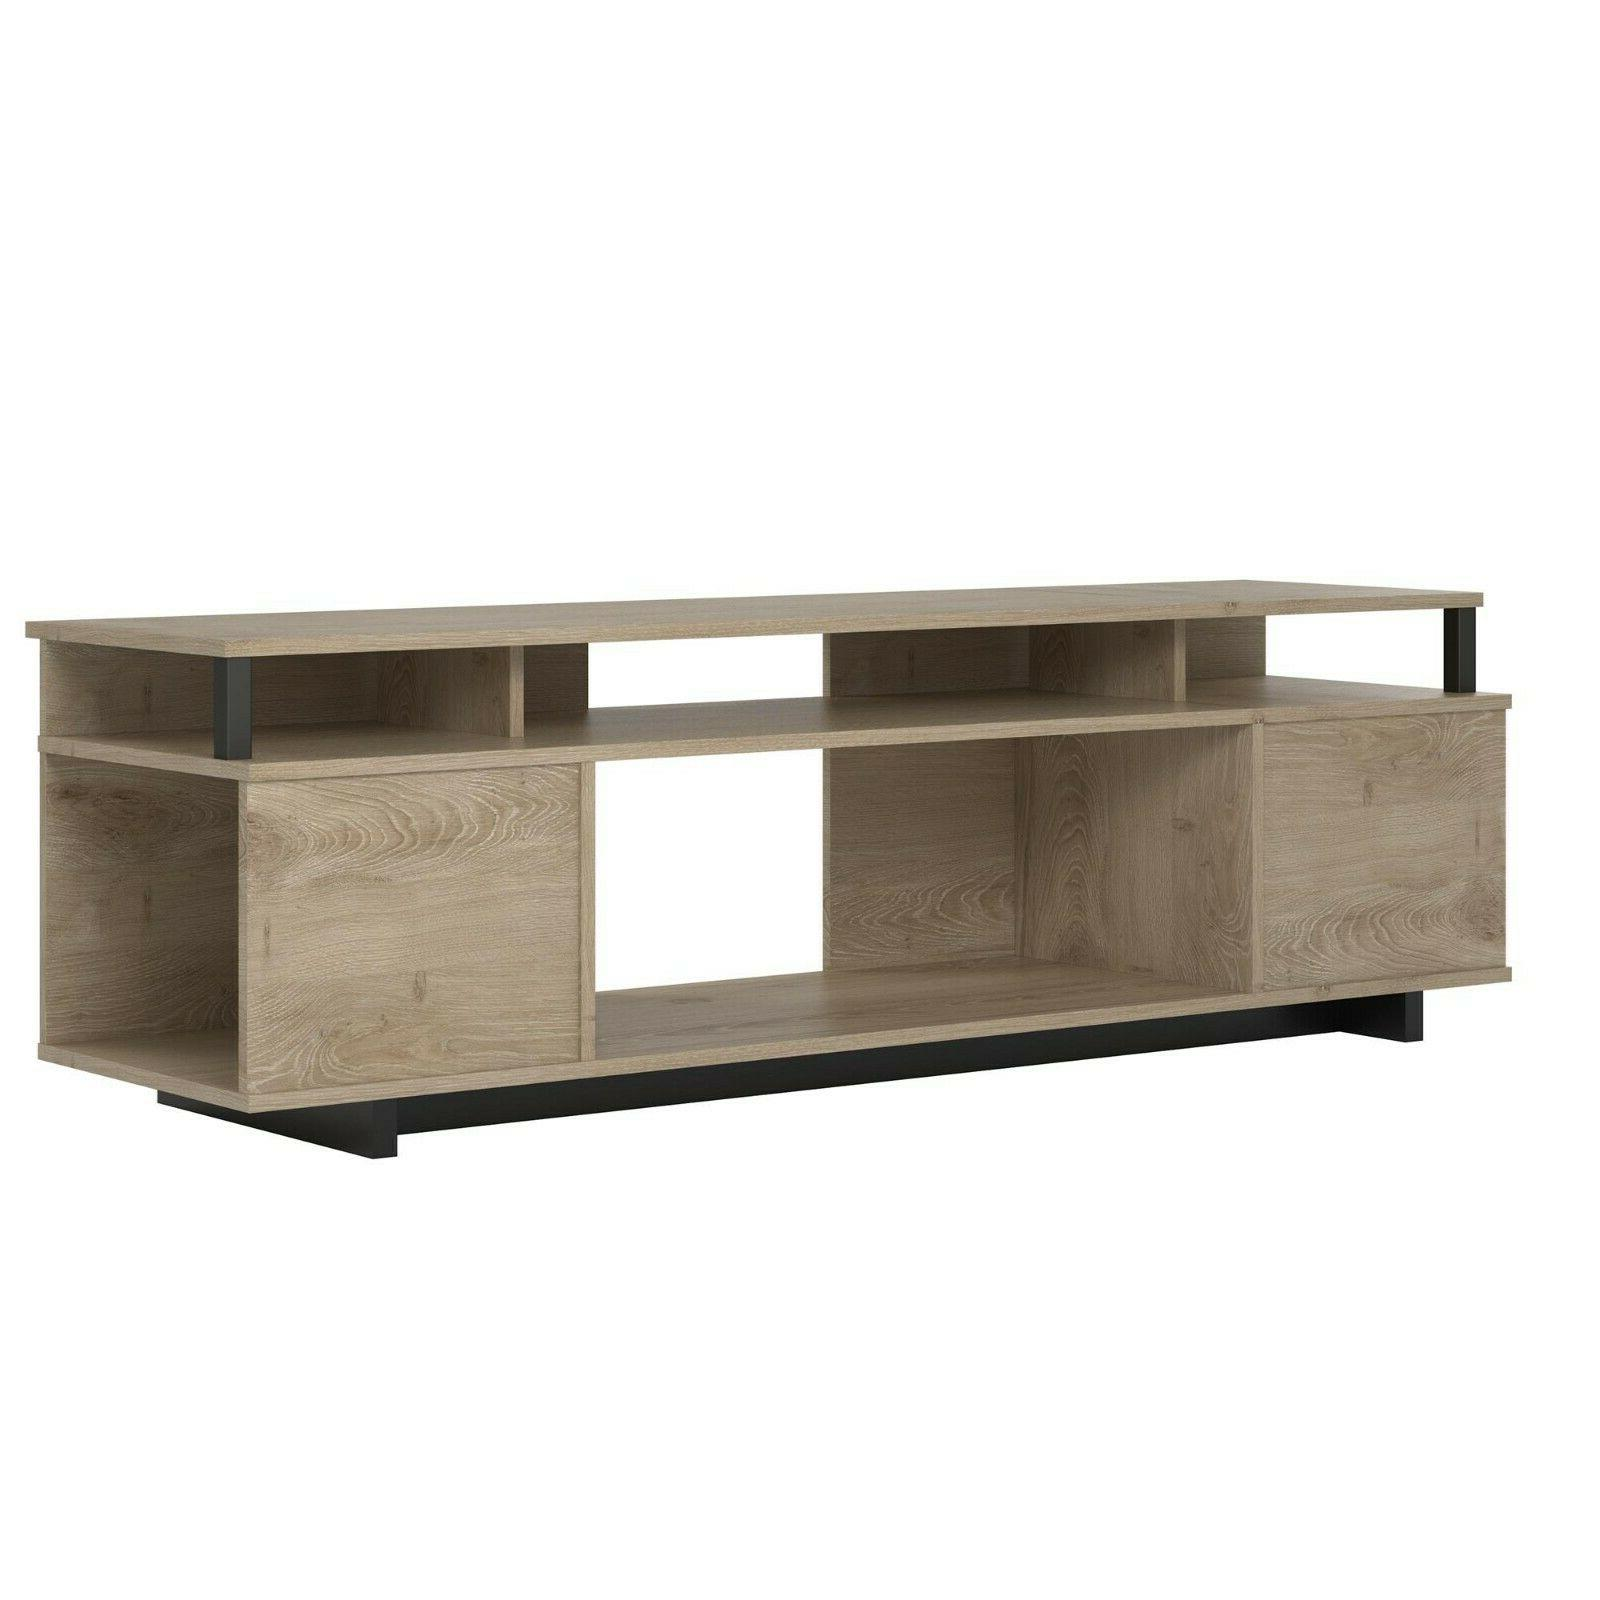 TV Stand Up 65in Console Entertainment Center Cabinet